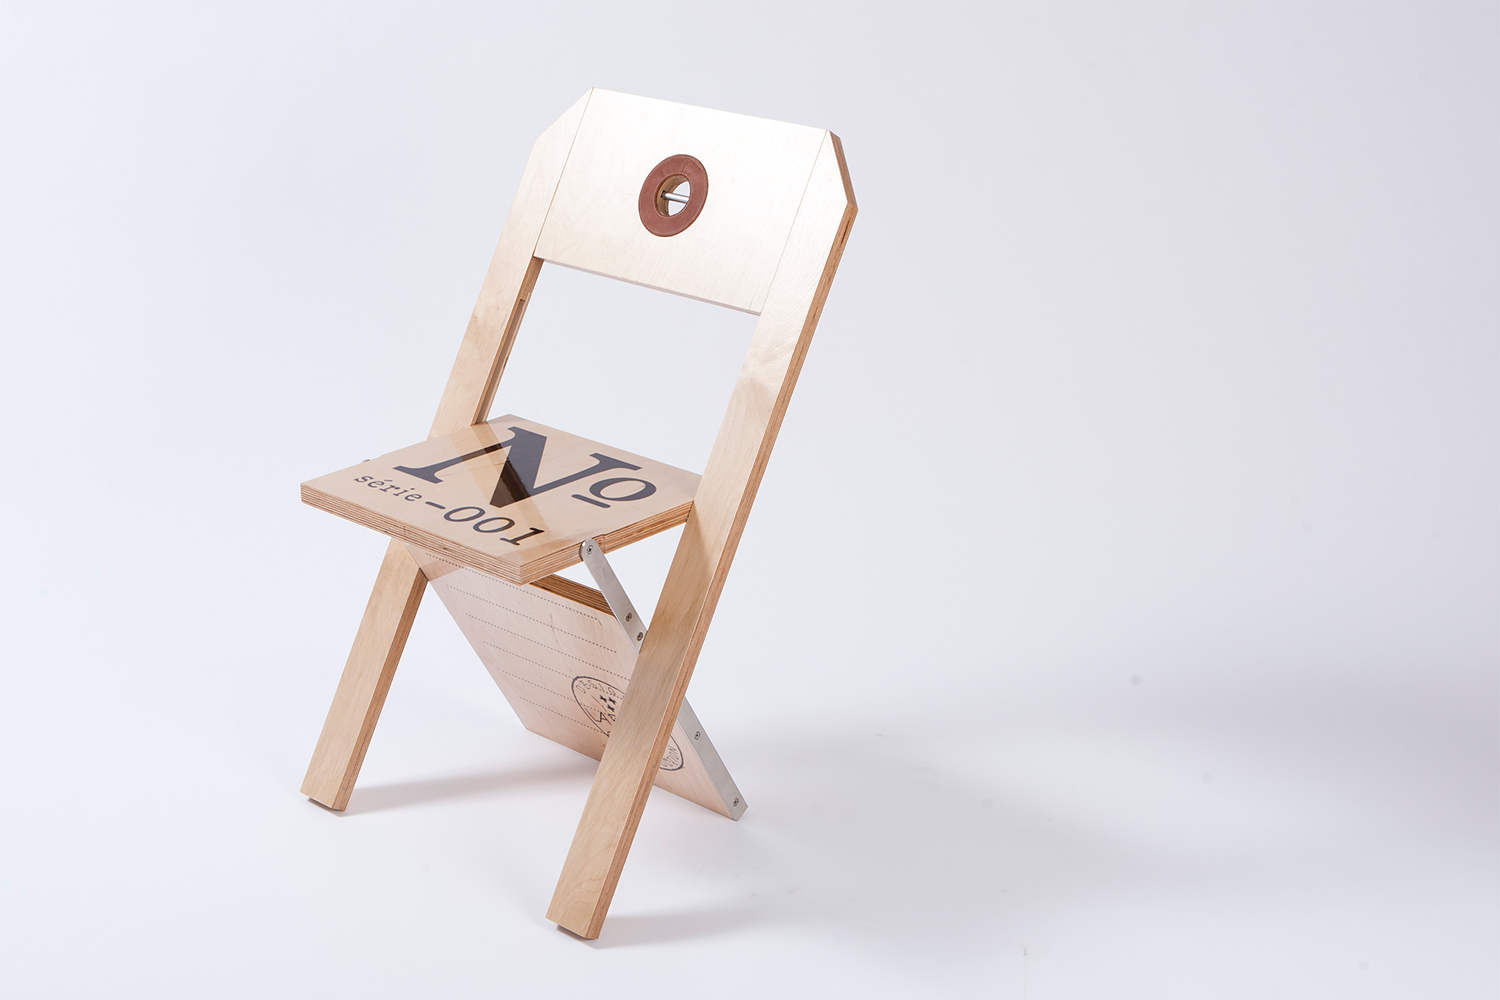 Folding chair made entirely of Russian birch and stainless steel, it is only one inch when folded. Customizable according to the event